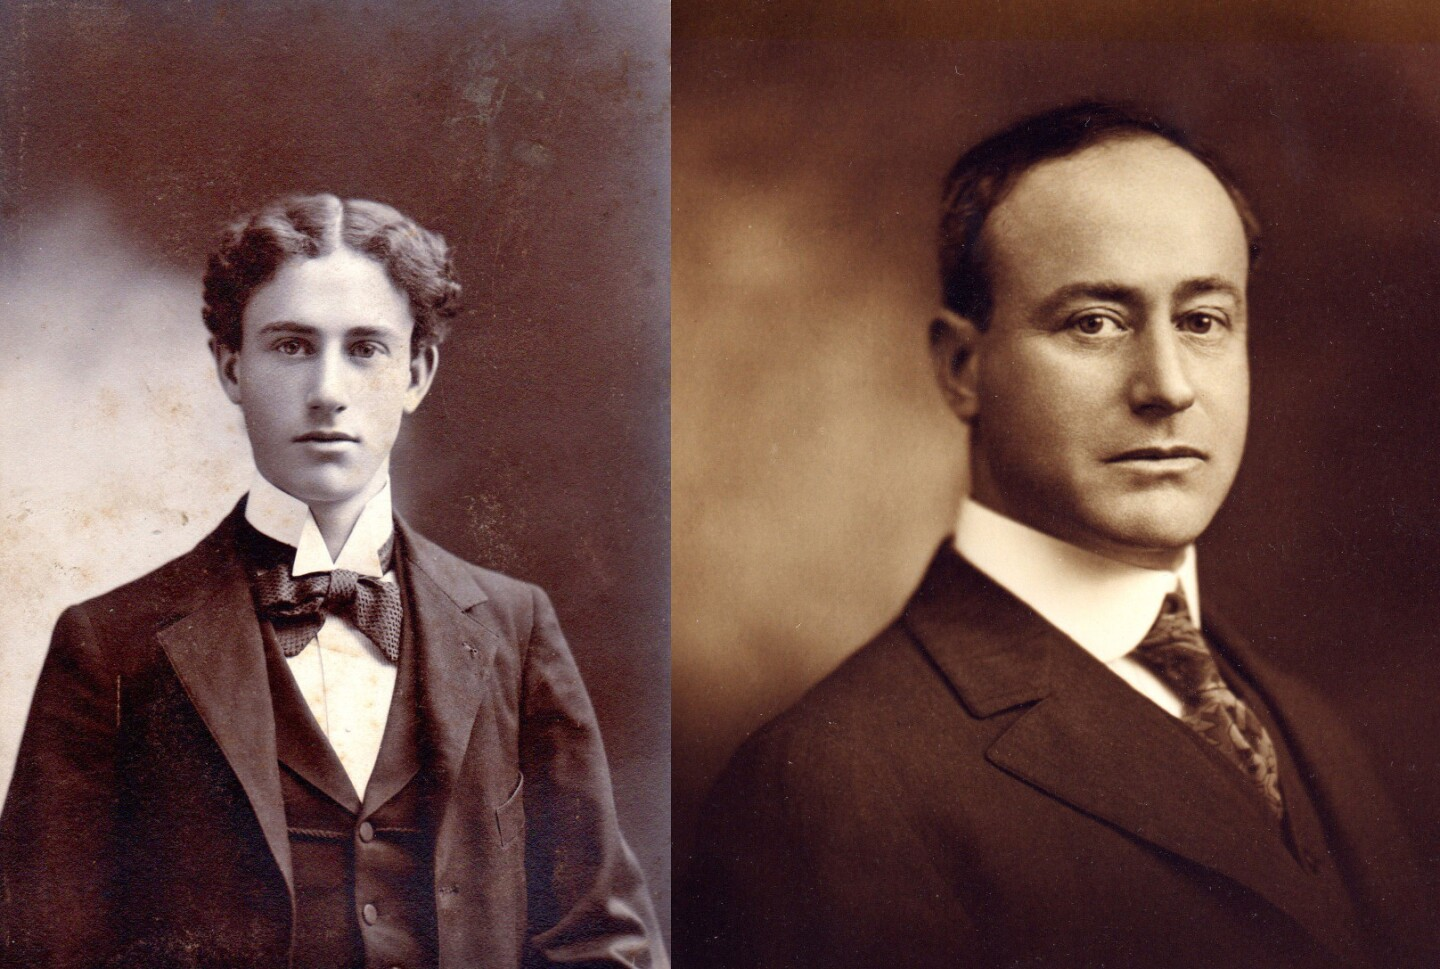 Pasadena developer Arthur S. Heineman, pictured on the left as a young man and on the right in middle age, is credited with coining the word motel.